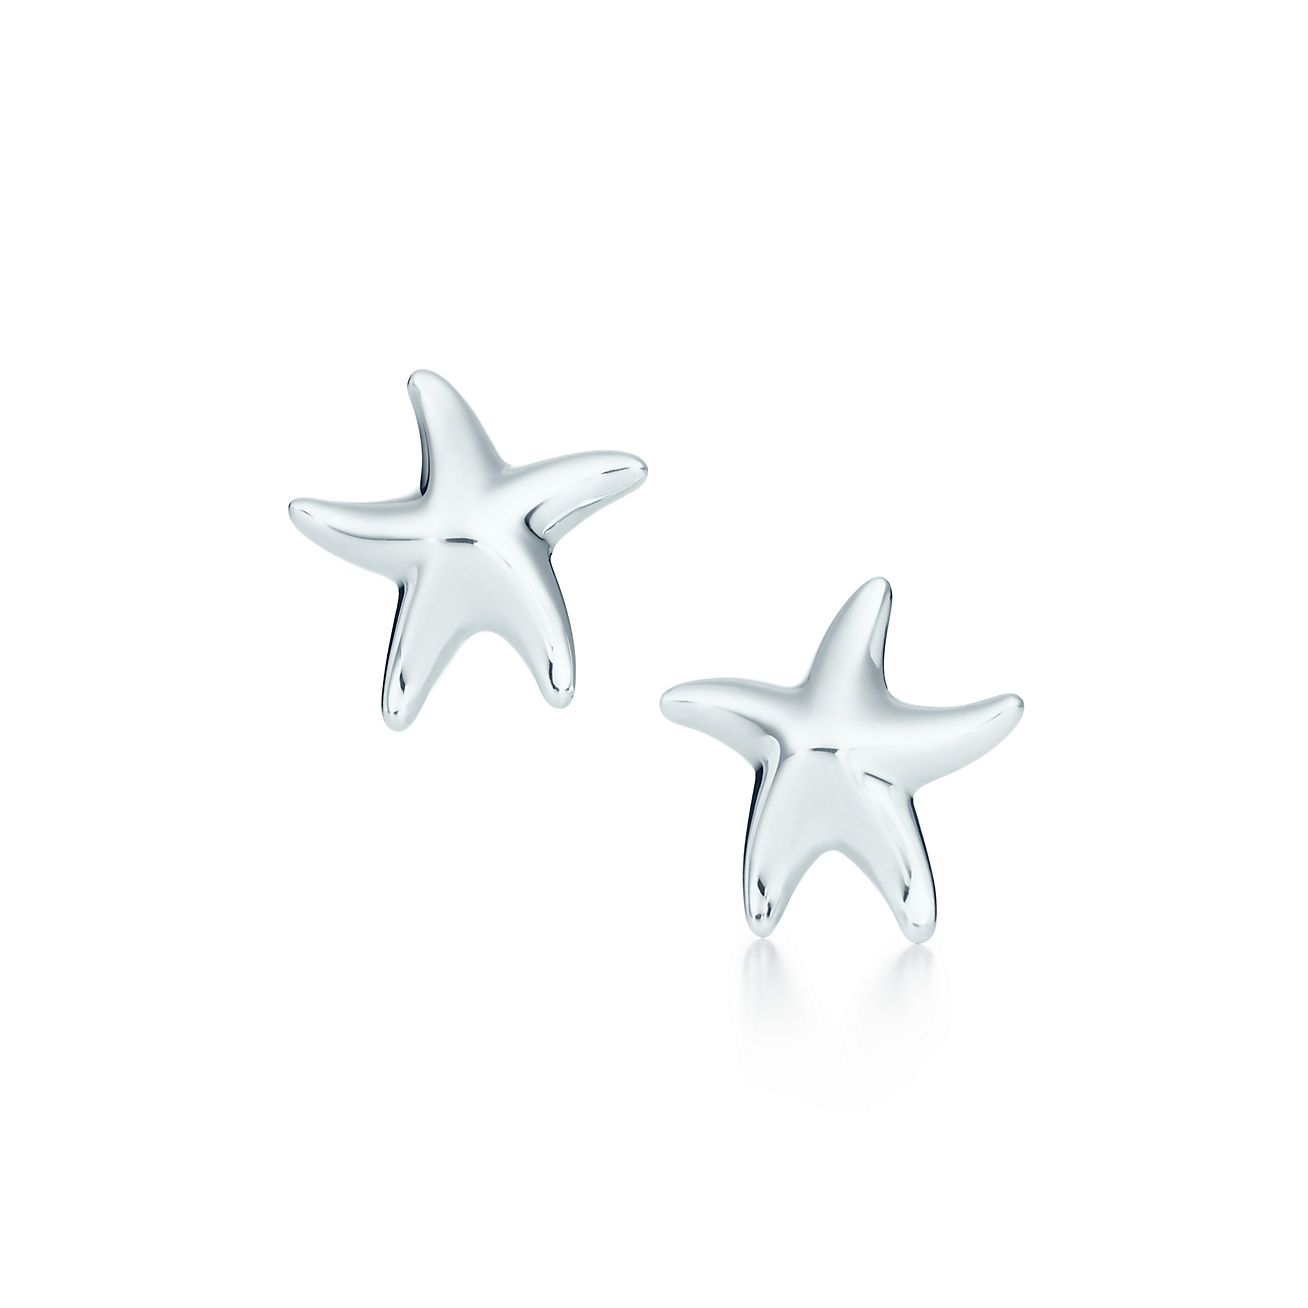 Jewelry Earrings Elsa Peretti Starfish Earrings 26195276 Tiffany Earrings Sterling